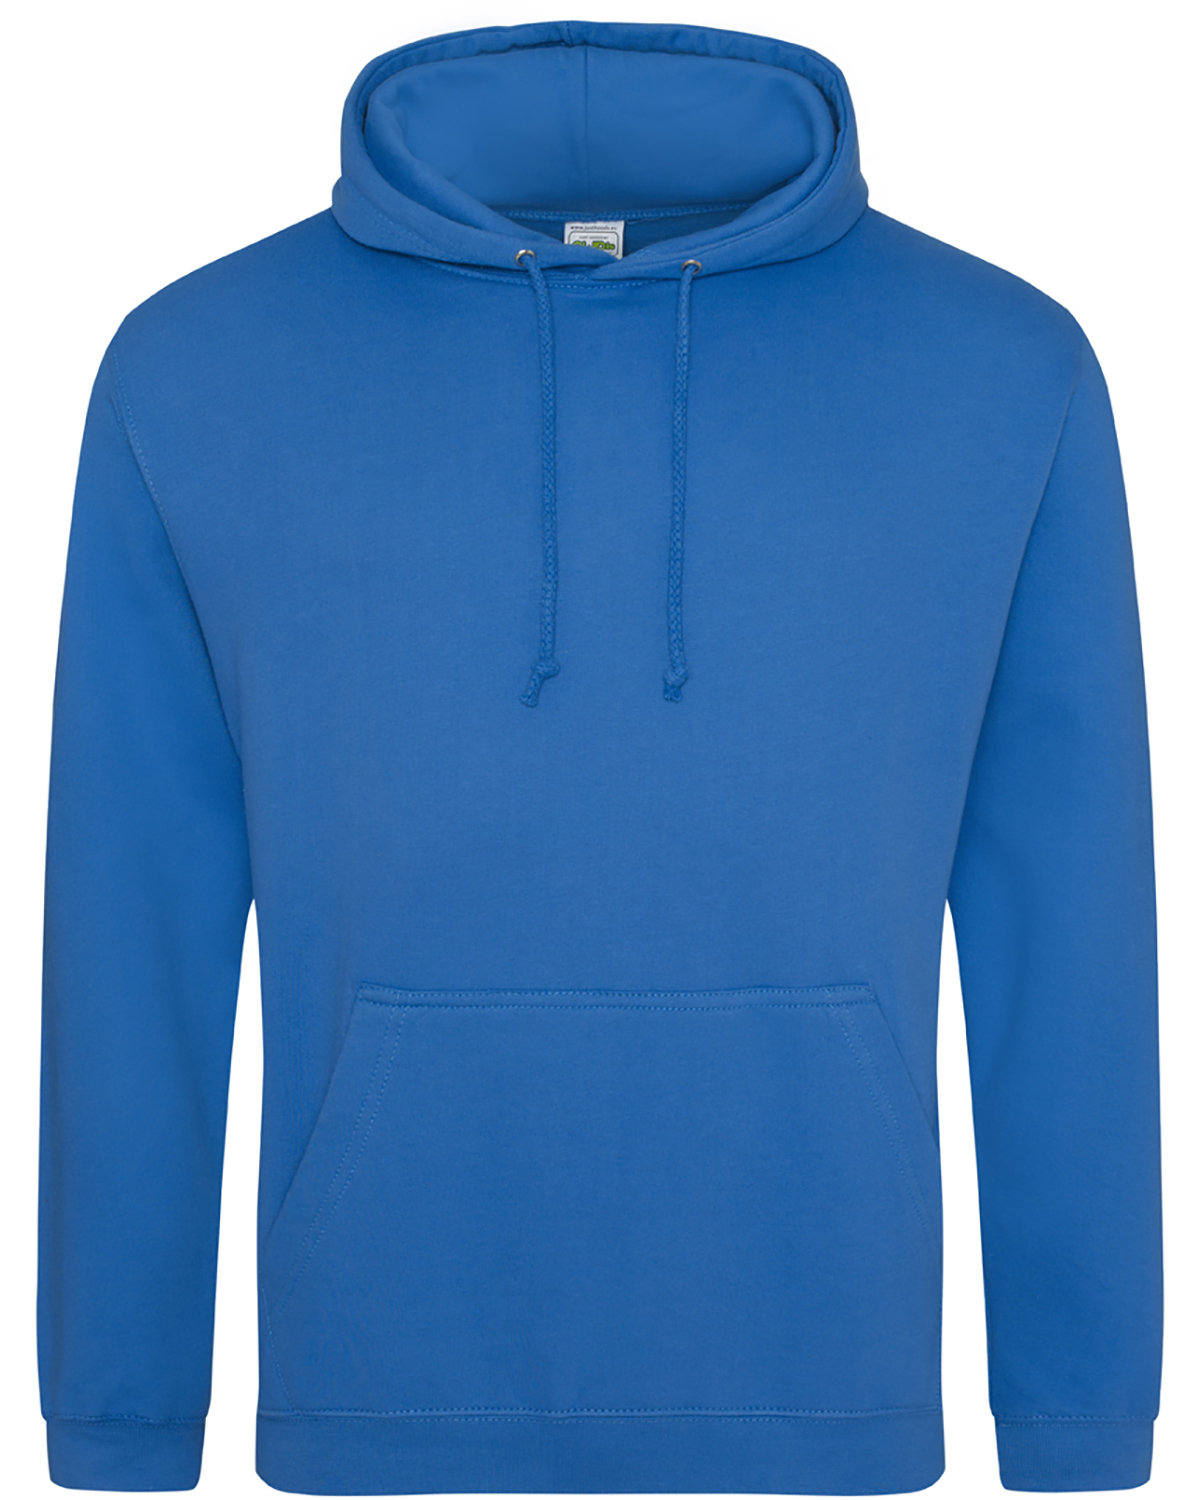 Just Hoods By AWDis Men's 80/20 Midweight College Hooded Sweatshirt SAPPHIRE BLUE